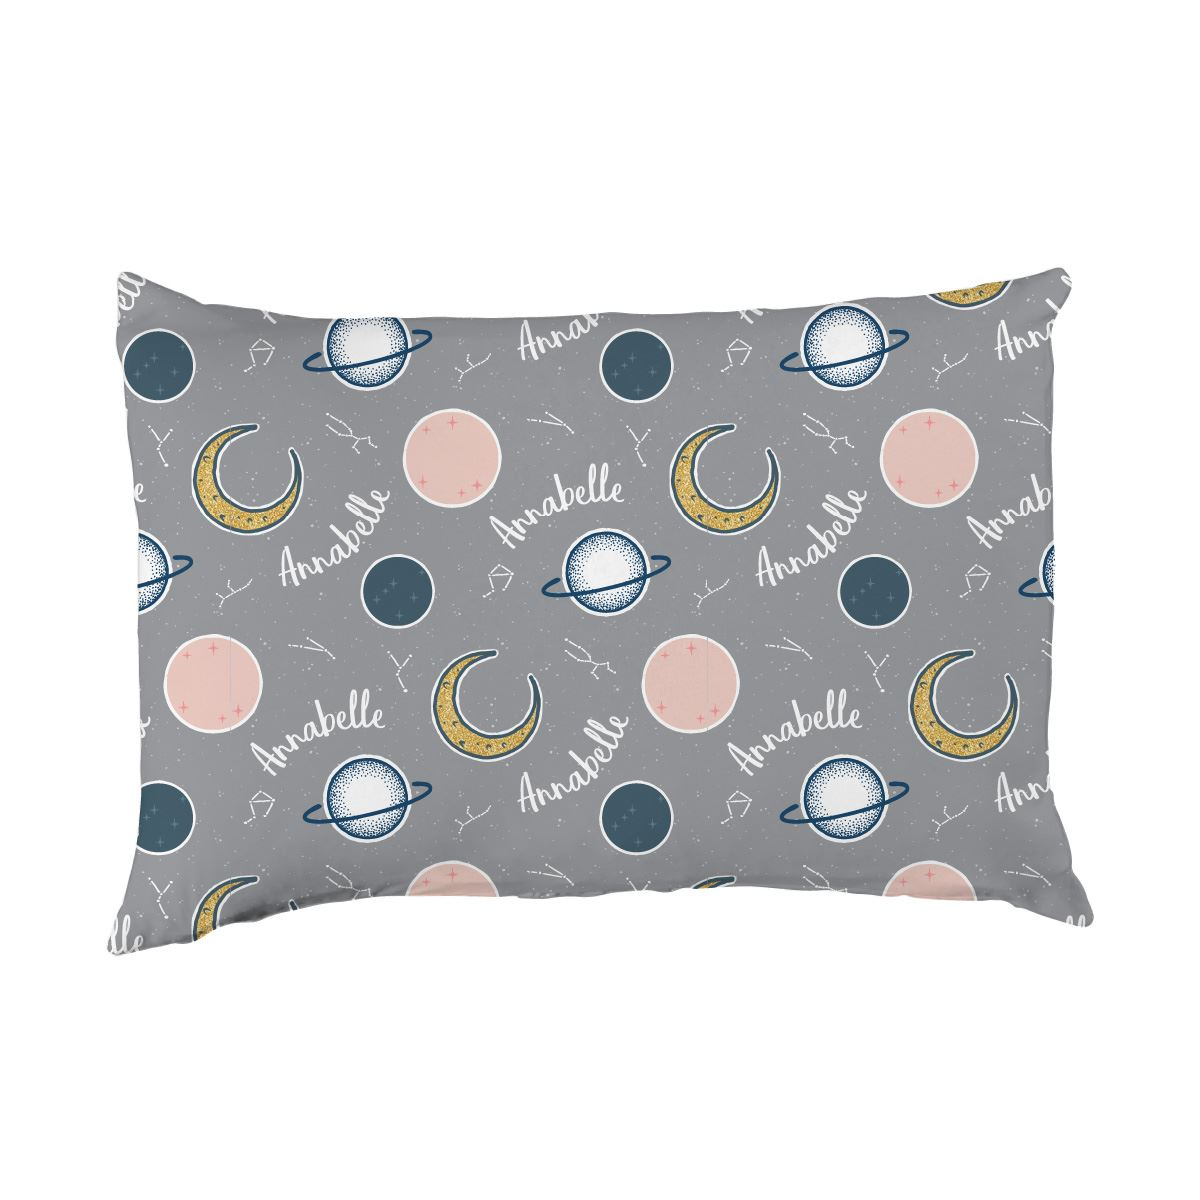 Annabelle's Outer Space | Big Kid Pillow Case